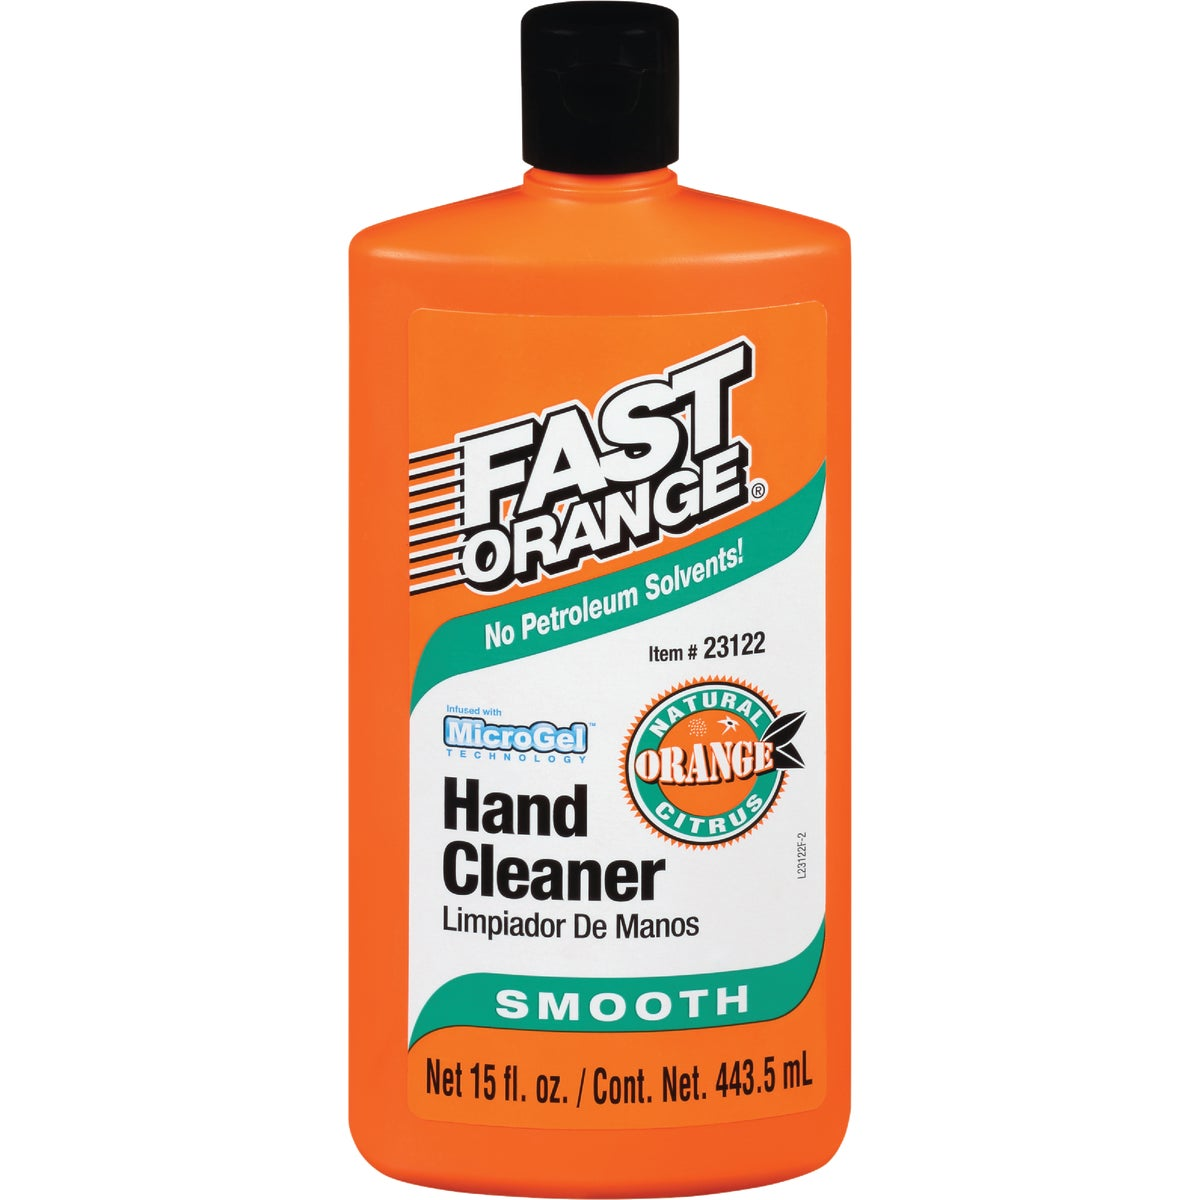 15OZ SMOOTH HAND CLEANER - 23113 by Itw Global Brands